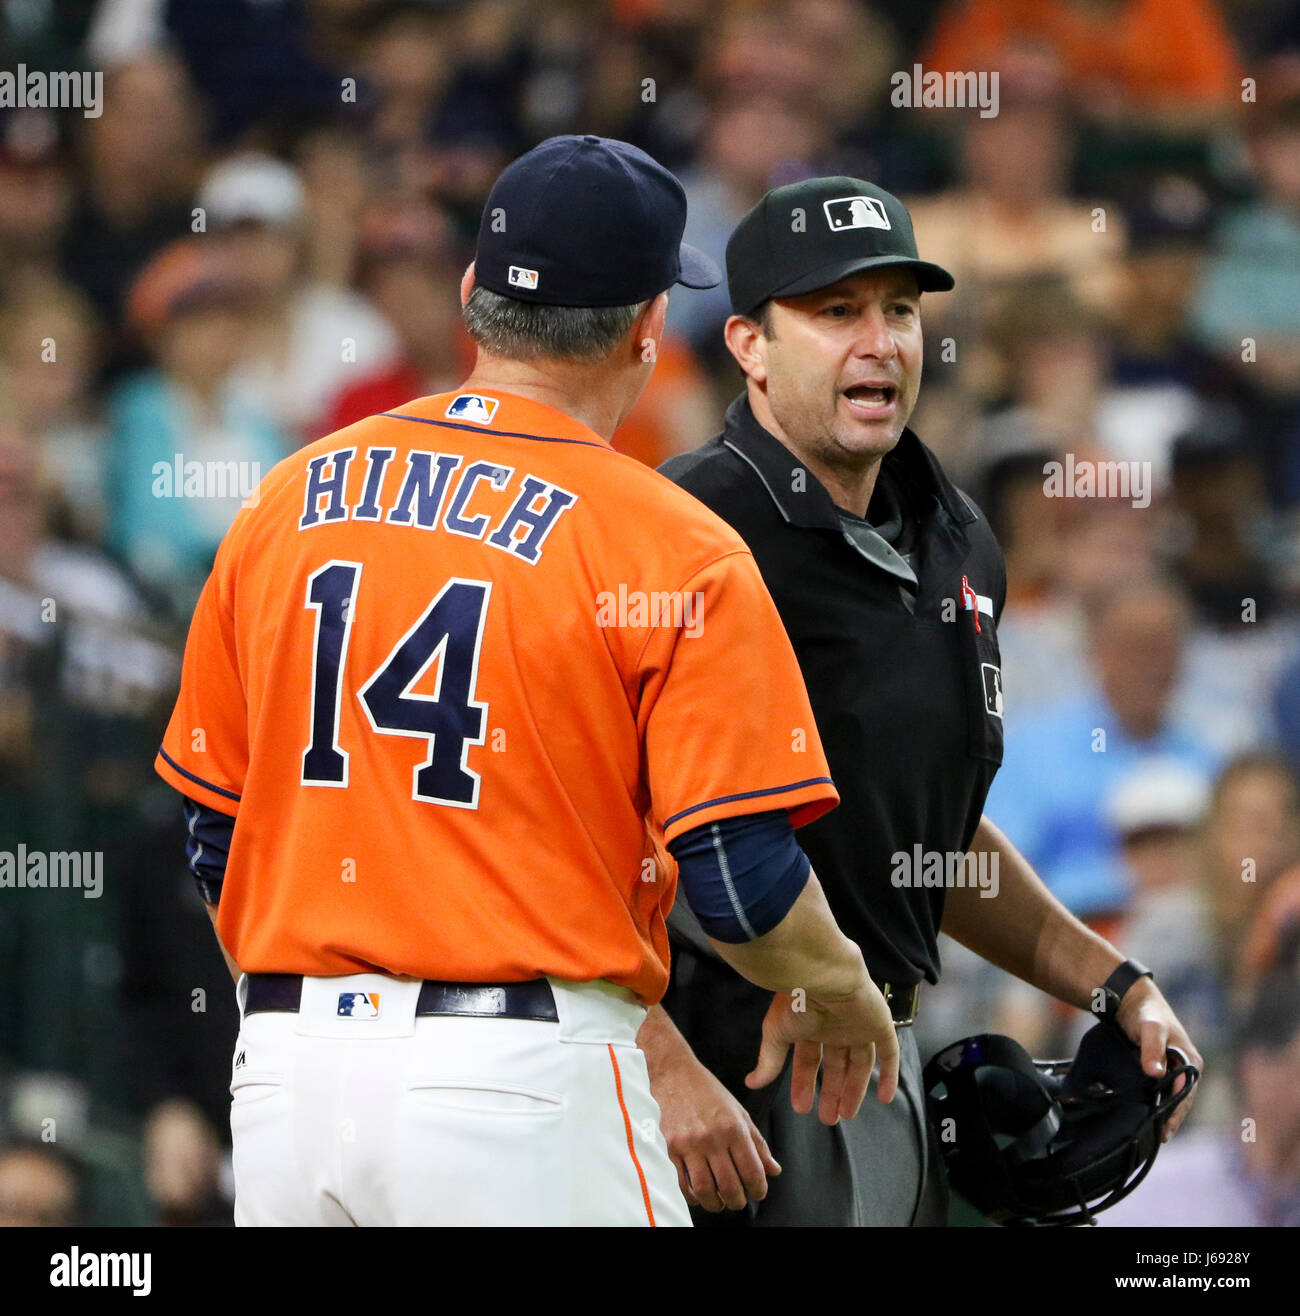 Houston, TX, USA. 19th May, 2017. Houston Astros manager A.J. Hinch (14) argues a call with home plate umpire Jim - Stock Image